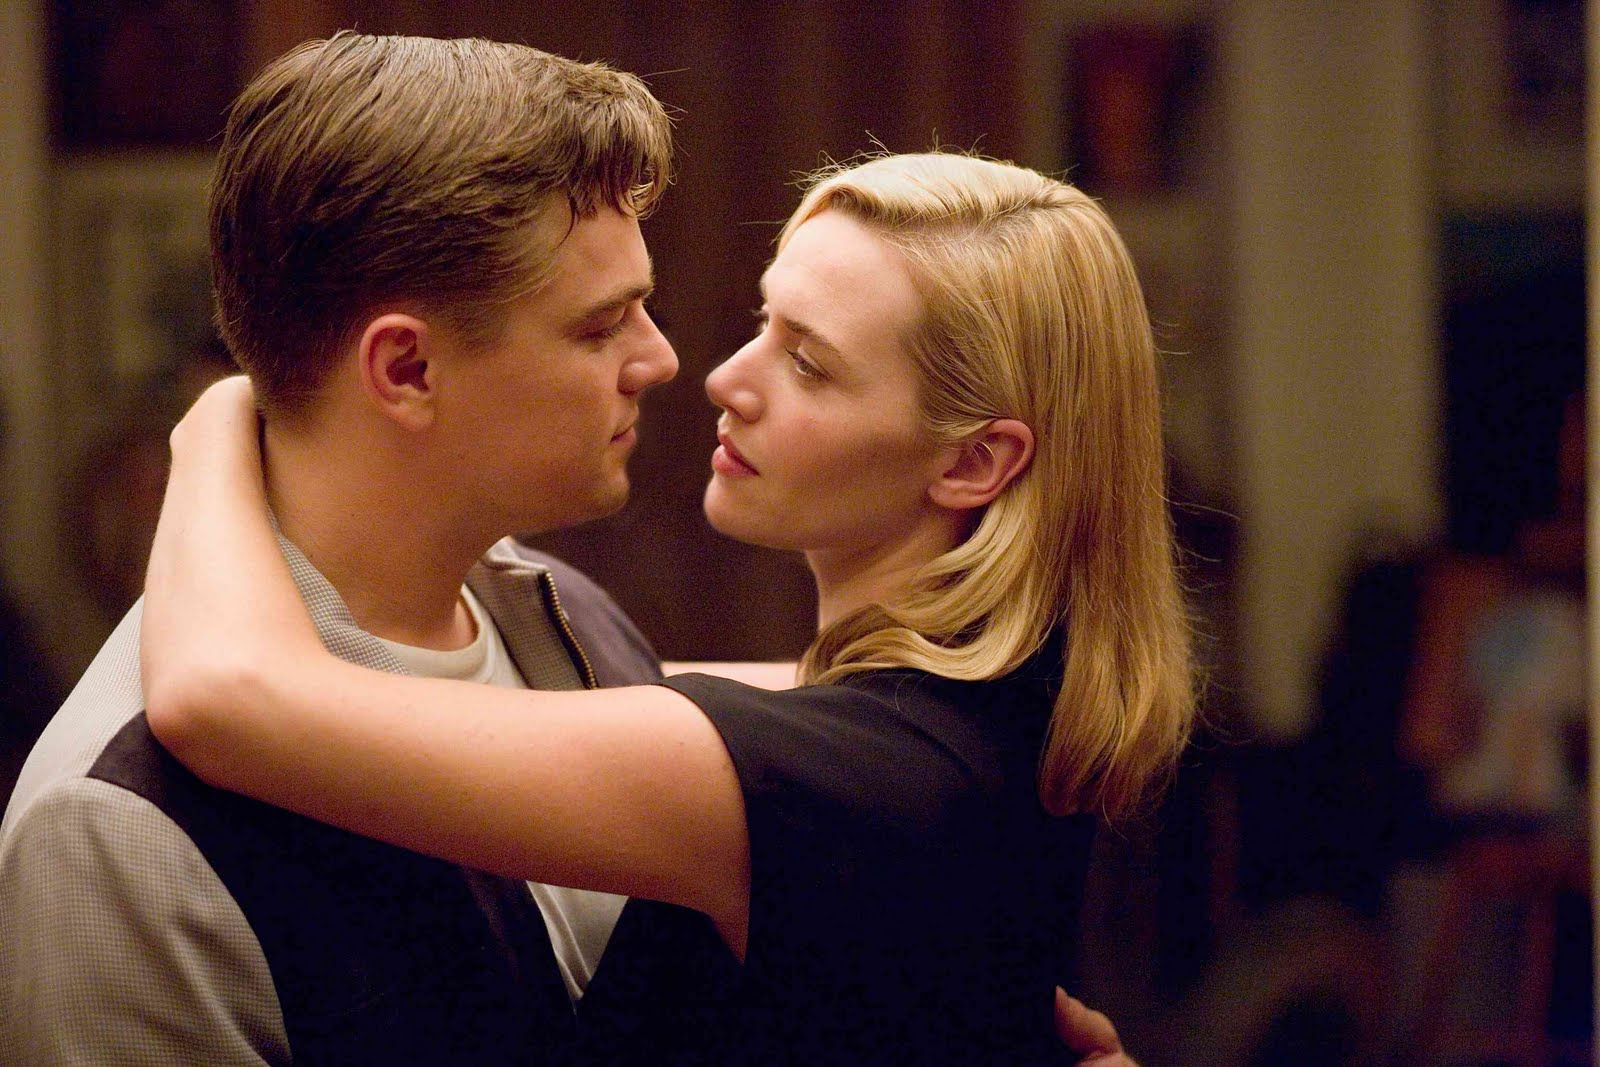 PHOTOS La réaction de Kate Winslet quand Leonardo DiCaprio a